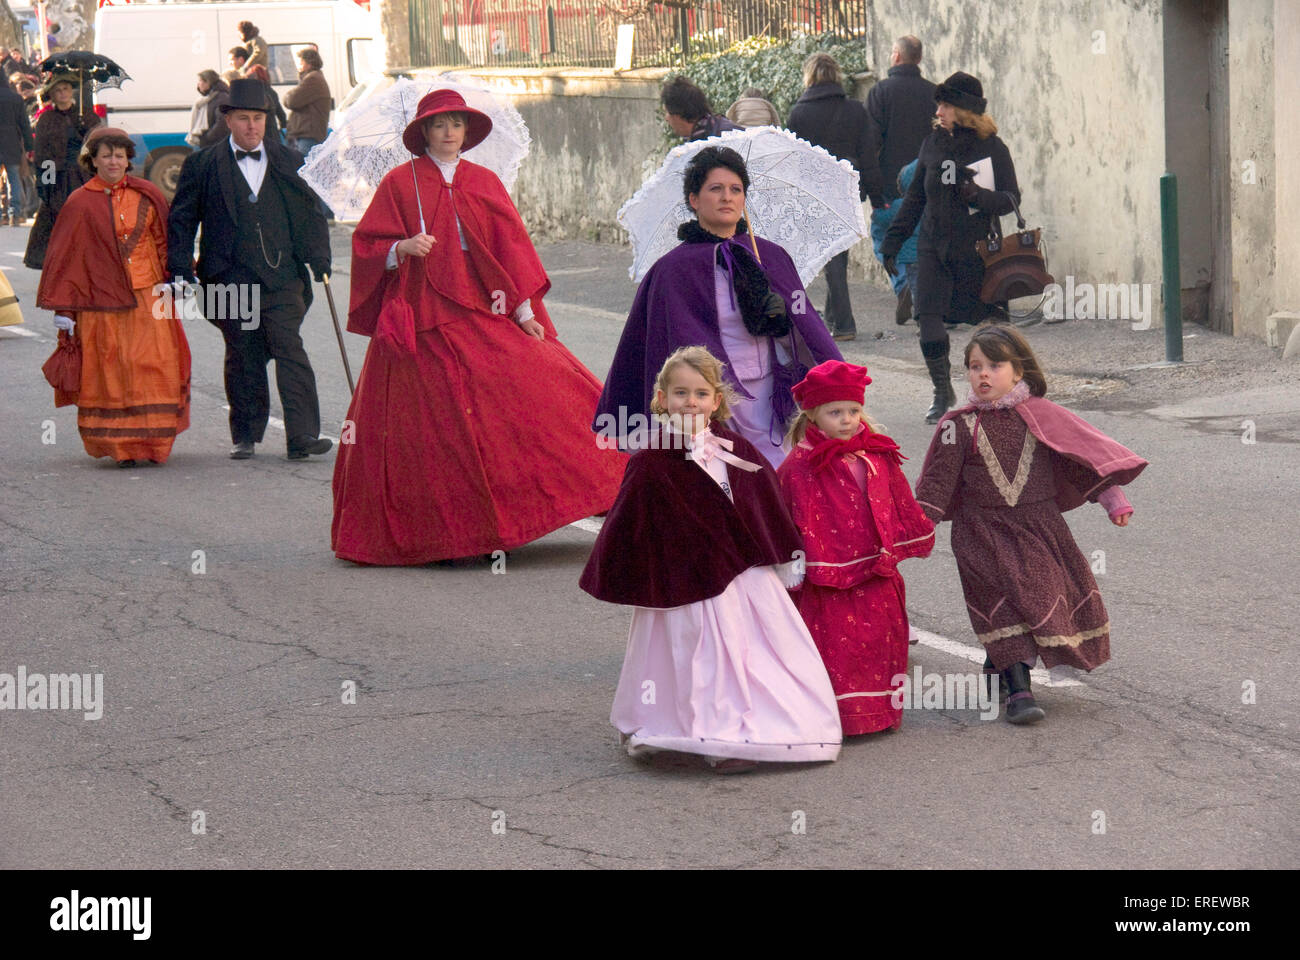 people in victorian costumes taking part in a valentines day parade in the village of roquemaure southern france